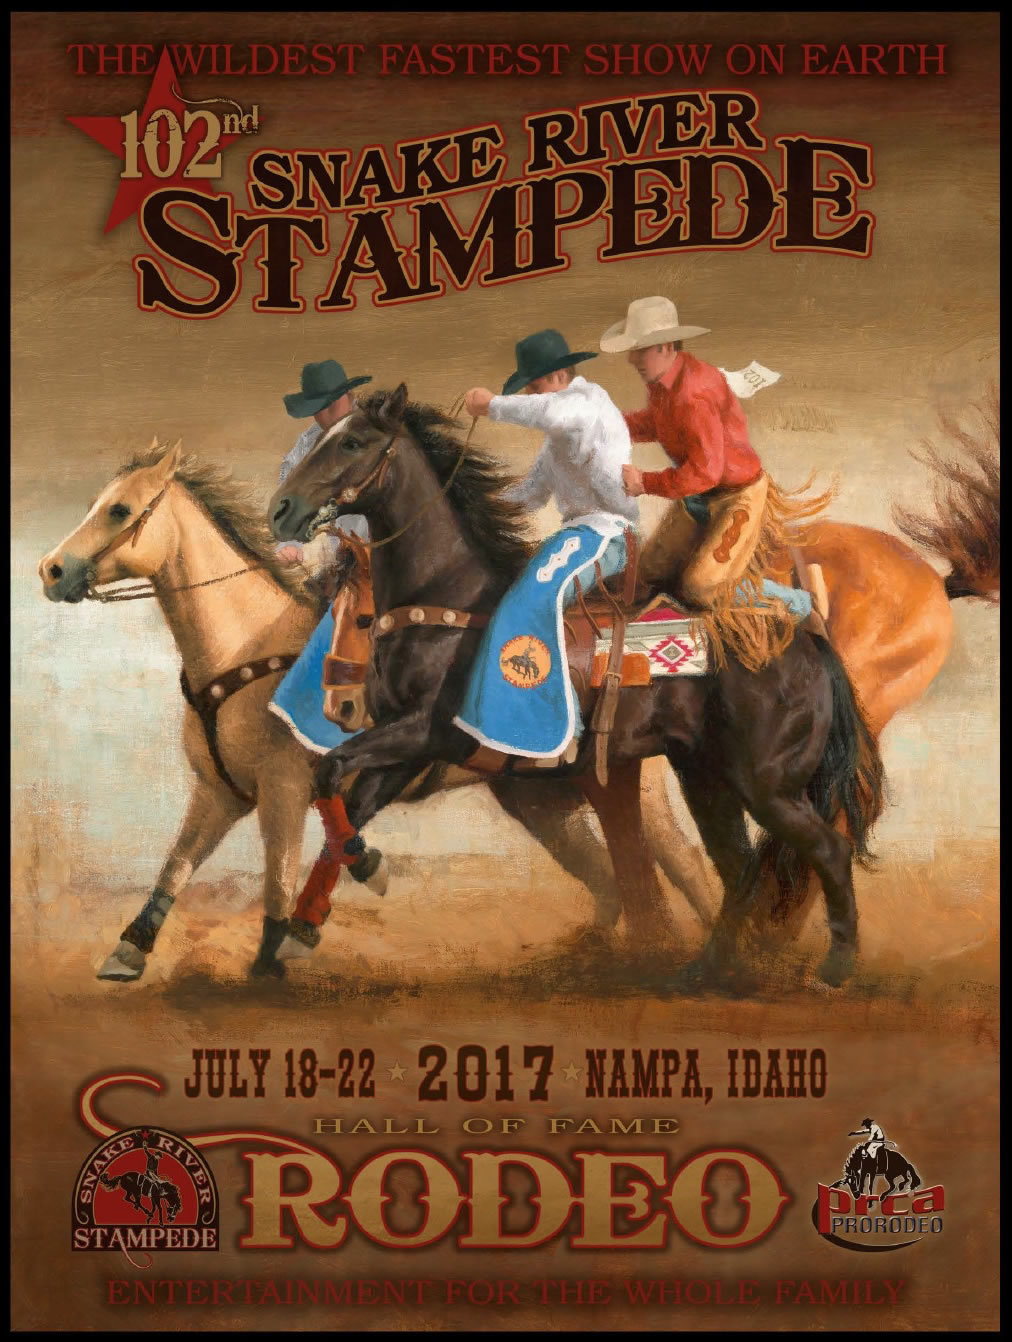 2017 OFFICIAL RODEO POSTER